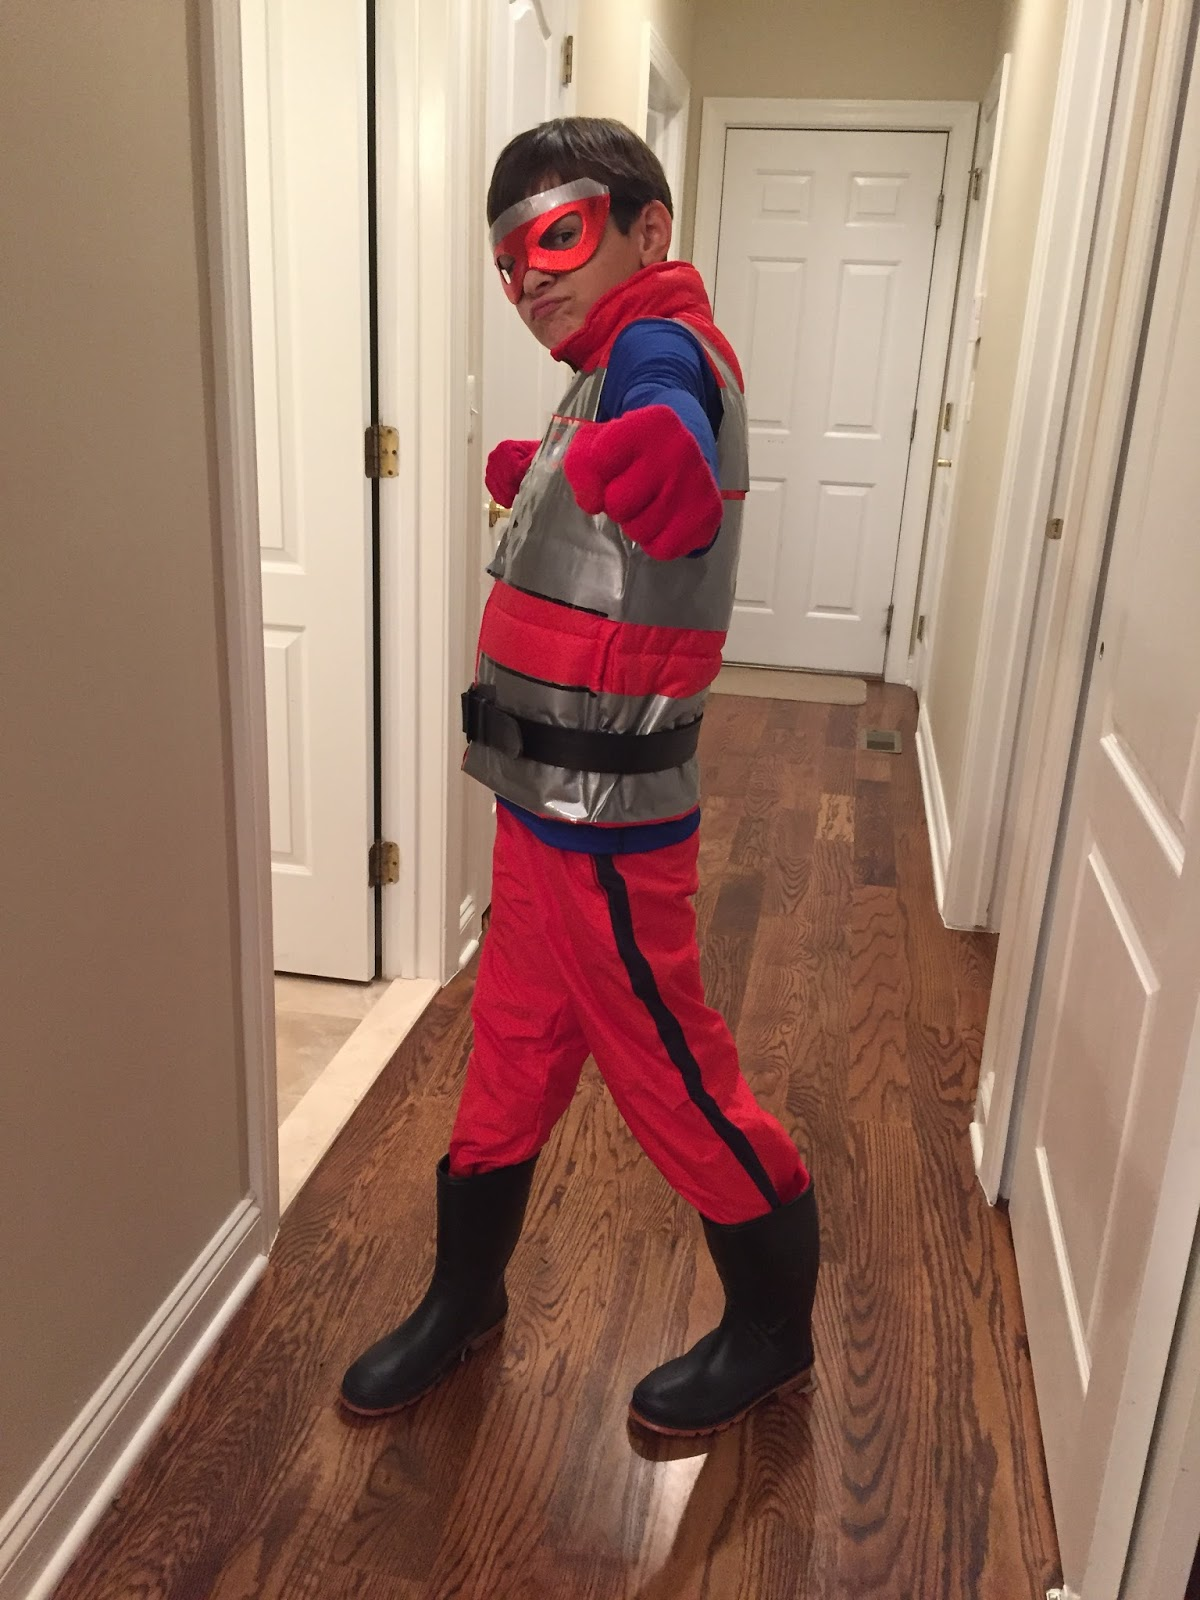 Super The Henry Danger Inspired Halloween Costume | Calypso In The Country SV92